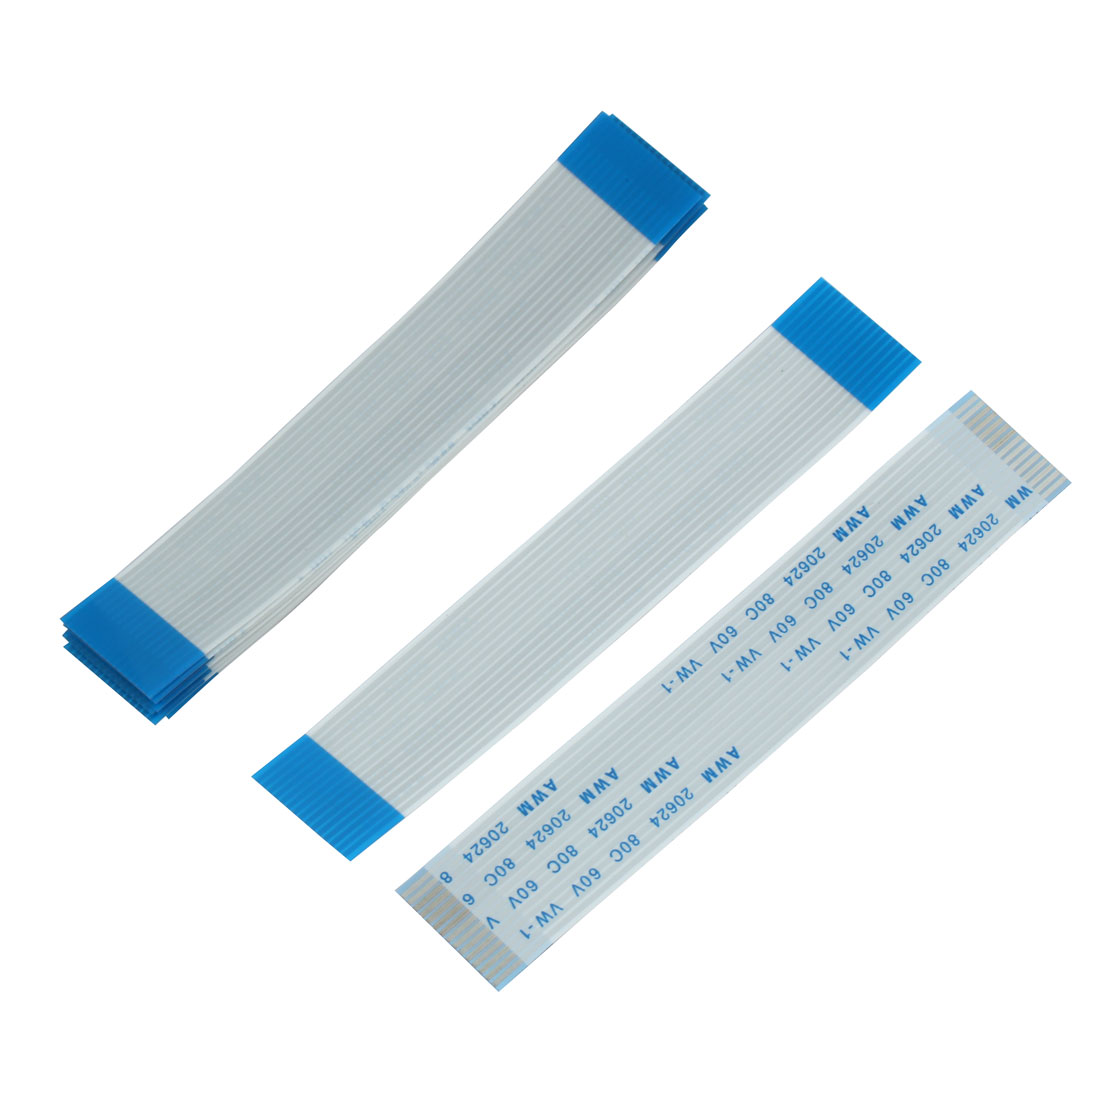 10pcs 1.0mm Spacing 15 Pin Flexible Flat Ribbon Cable FPC FFC Connect Wire Cord 90mm Length